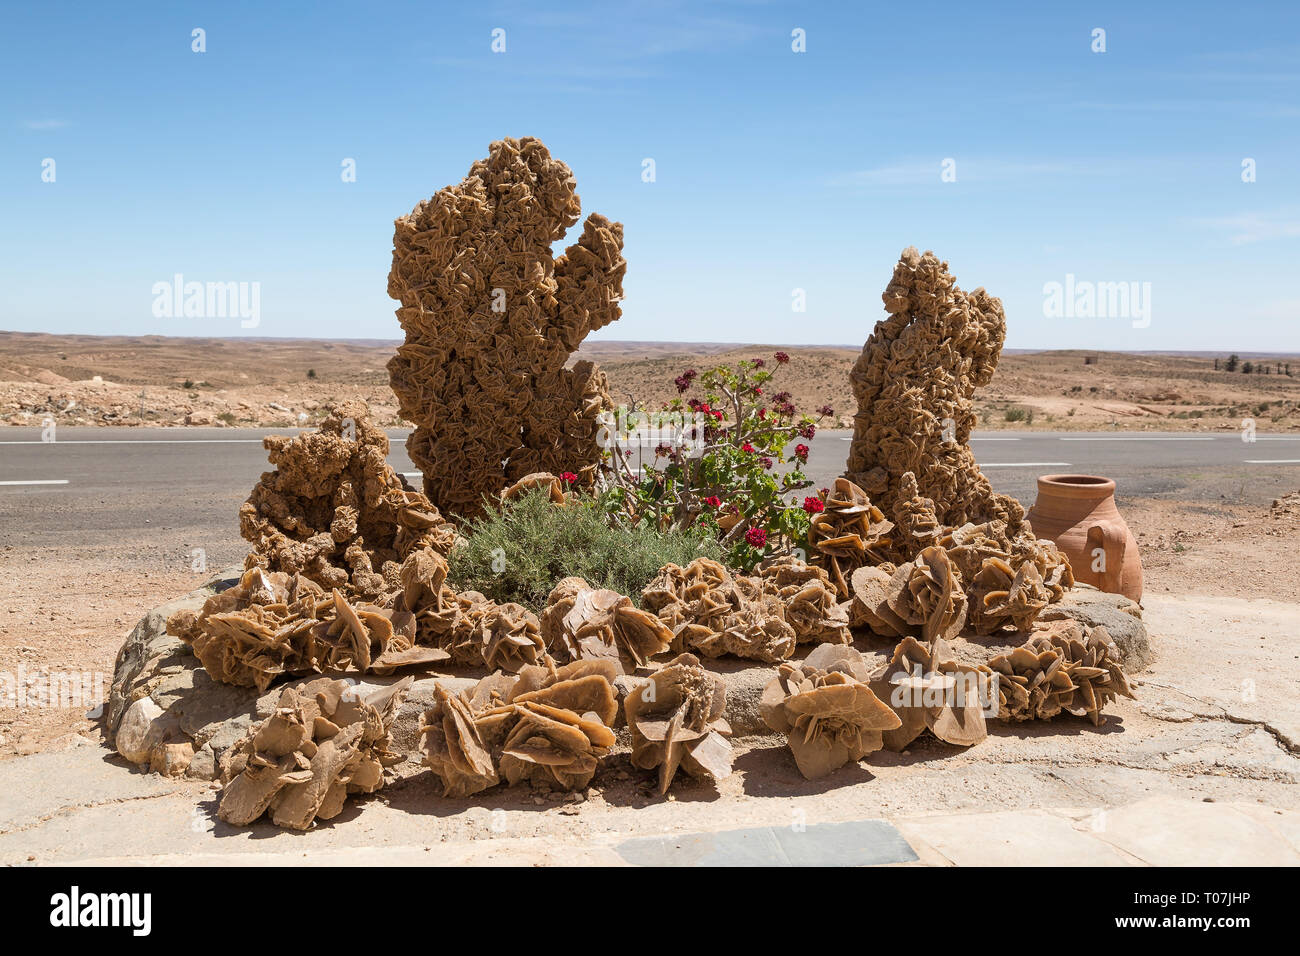 Large desert rose stone formation and rose flowers in the flower bed next to the road in the Tunisian desert. - Stock Image